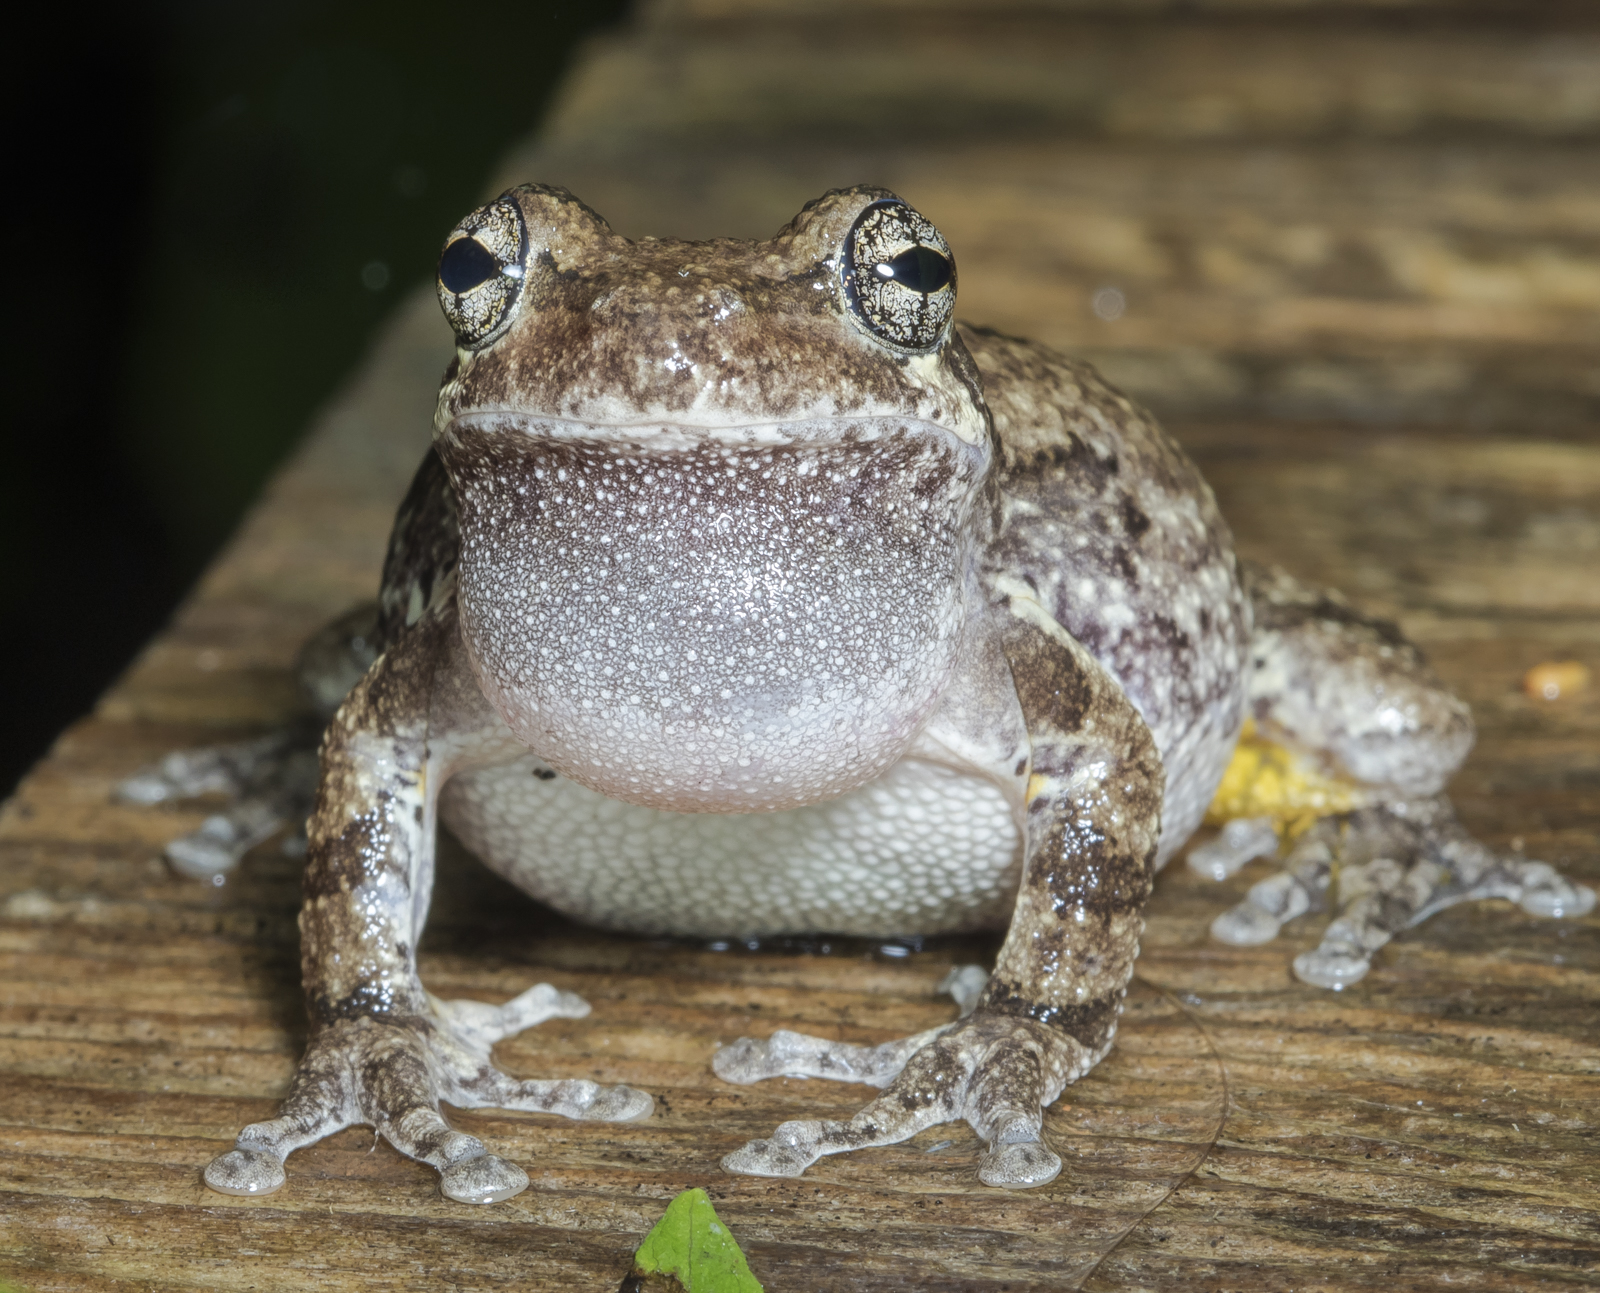 Cope's Gray Treefrog front view